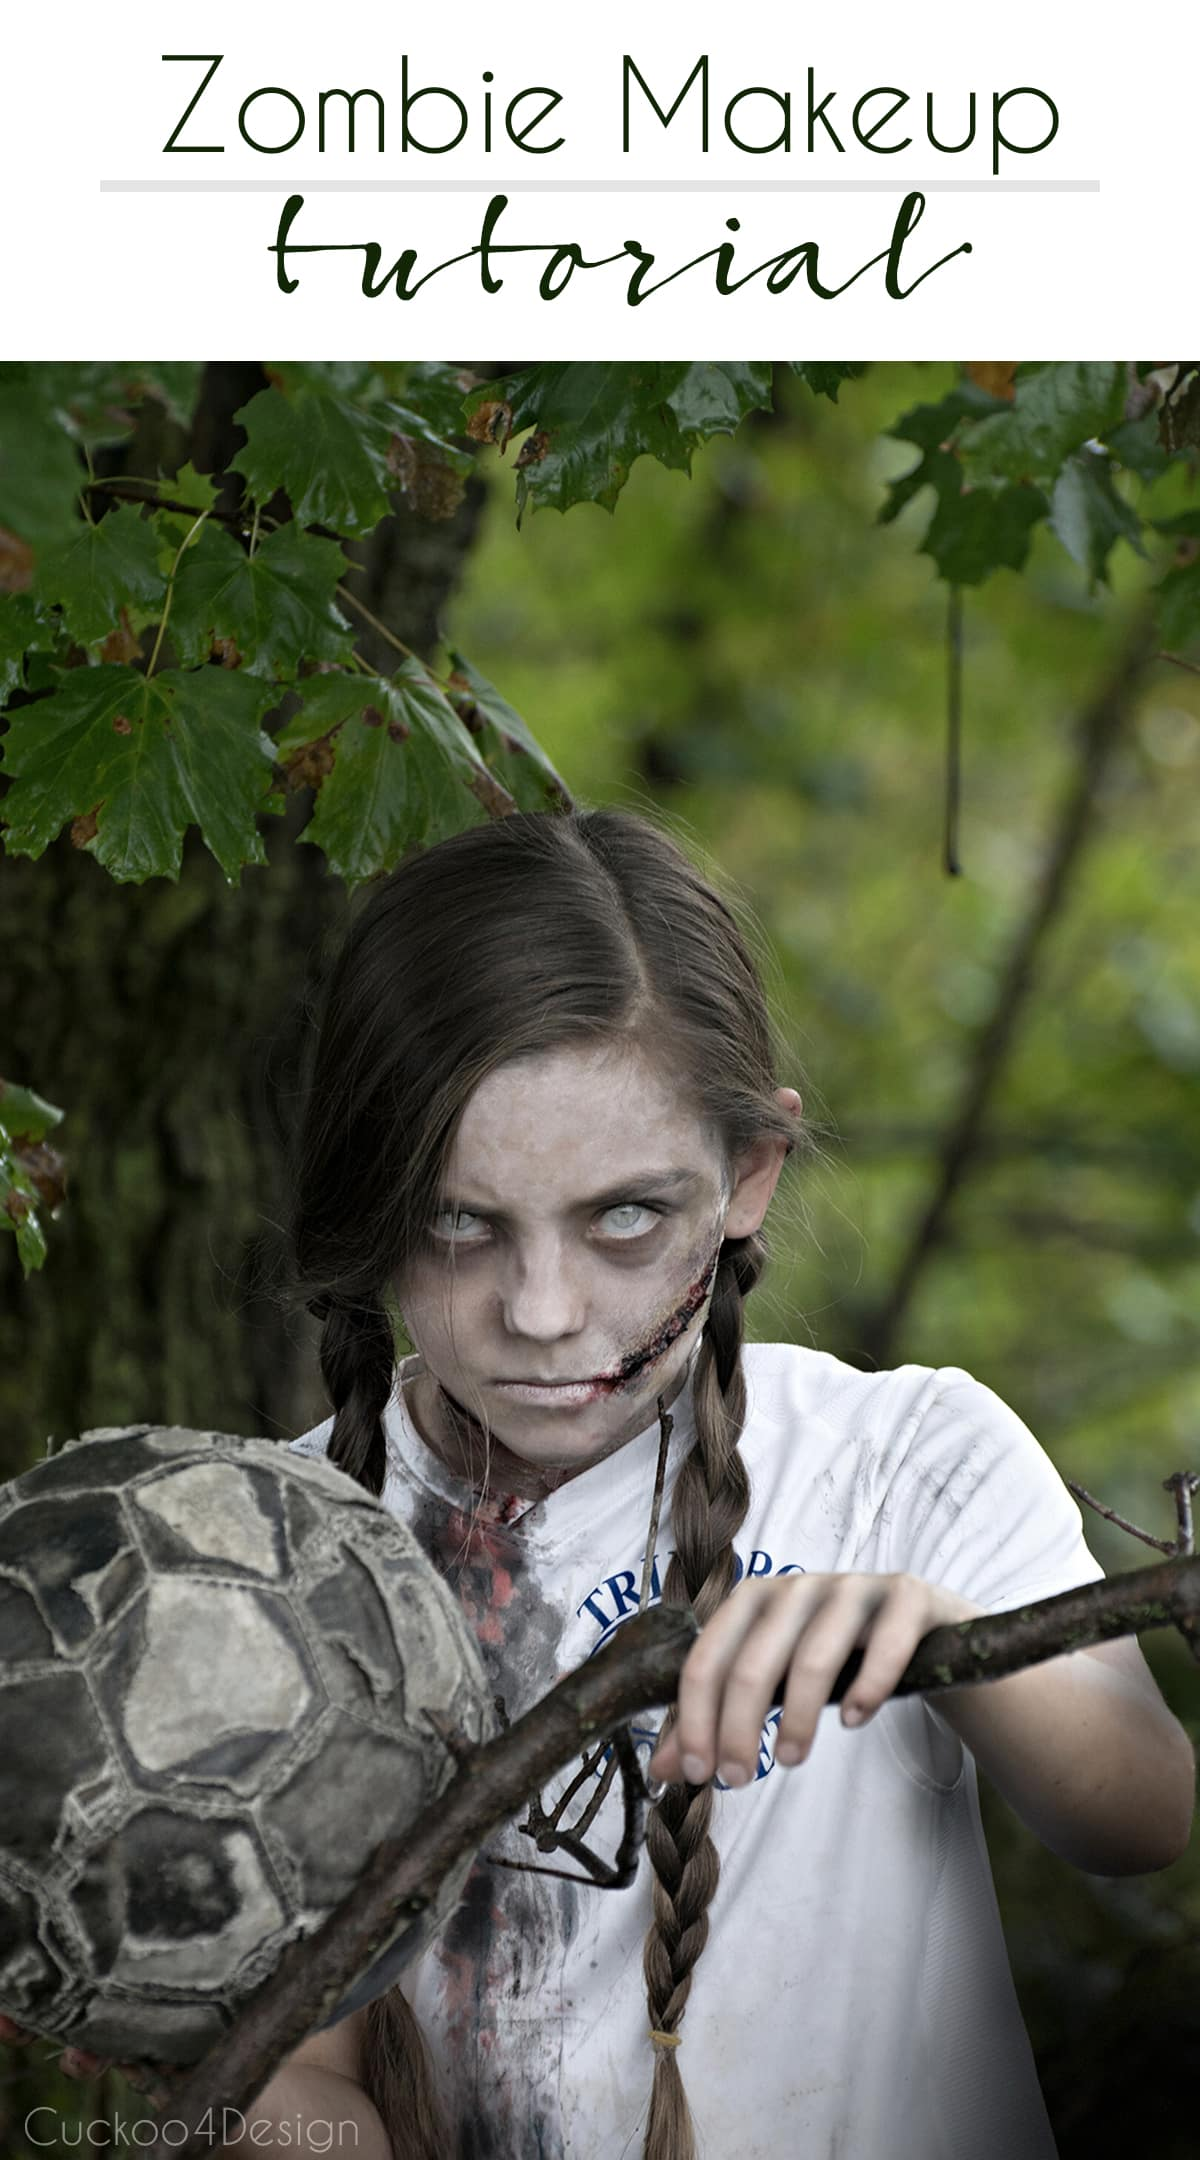 easy tutorial on how to make creepy zombie makeup with some easy to follow steps. If you can decoupage a craft project than you can make zombie makeup too